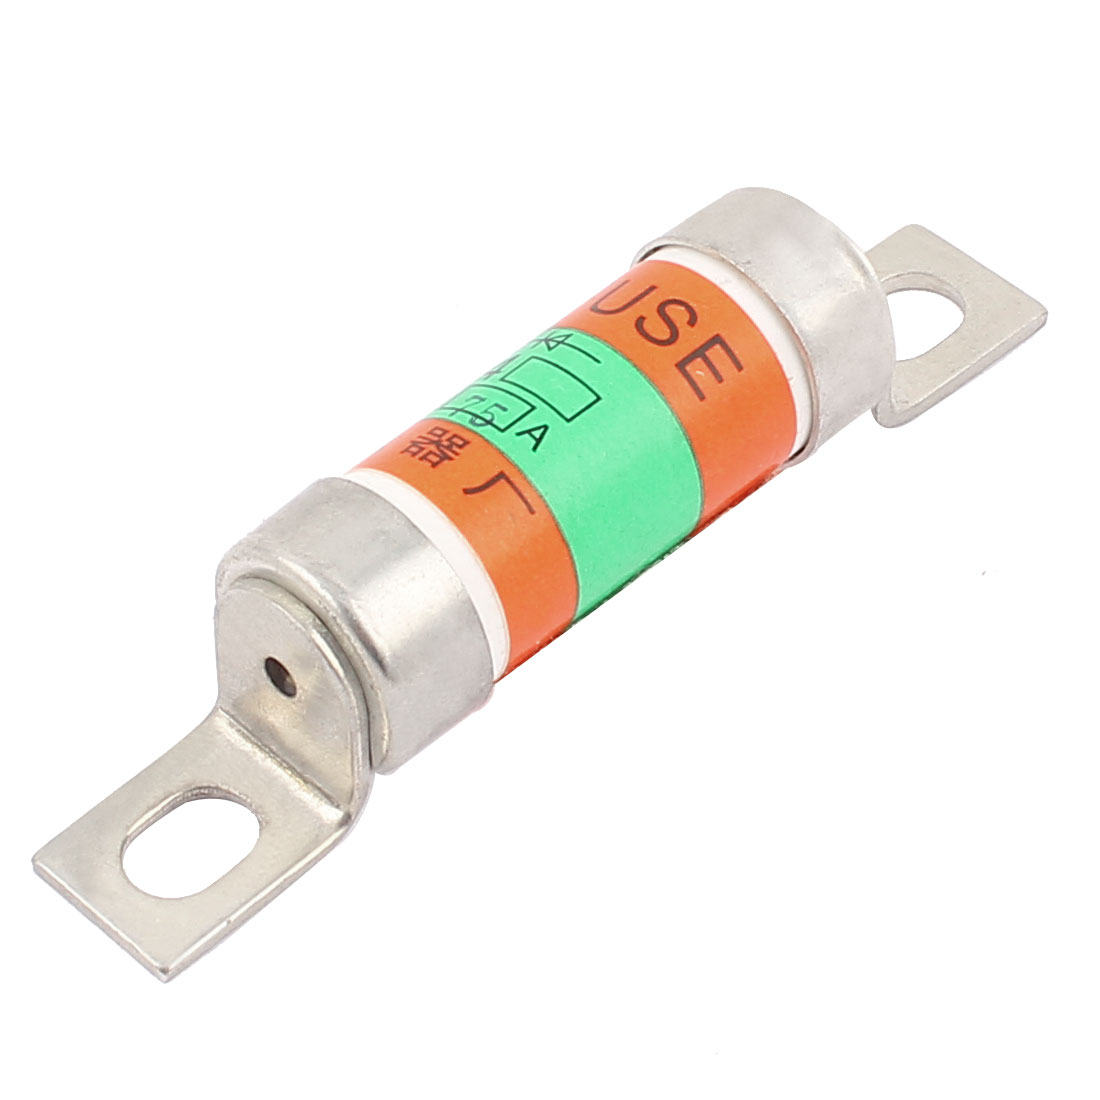 RGS4 660V 75A Cylinder Overload Protective Fast Blow Fuse Link